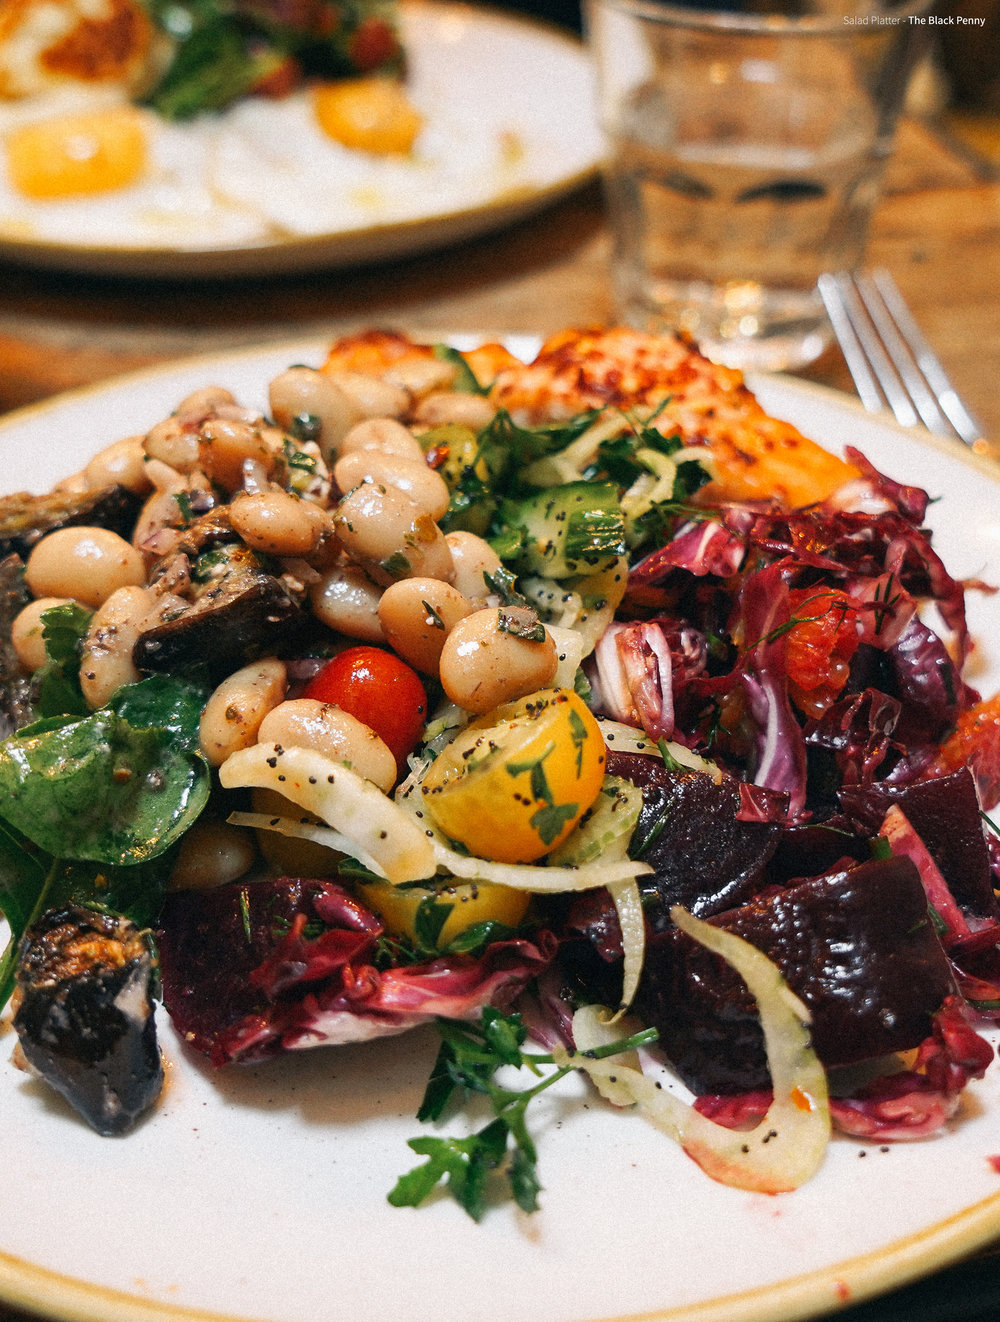 the-black-penny-london-salad.jpg